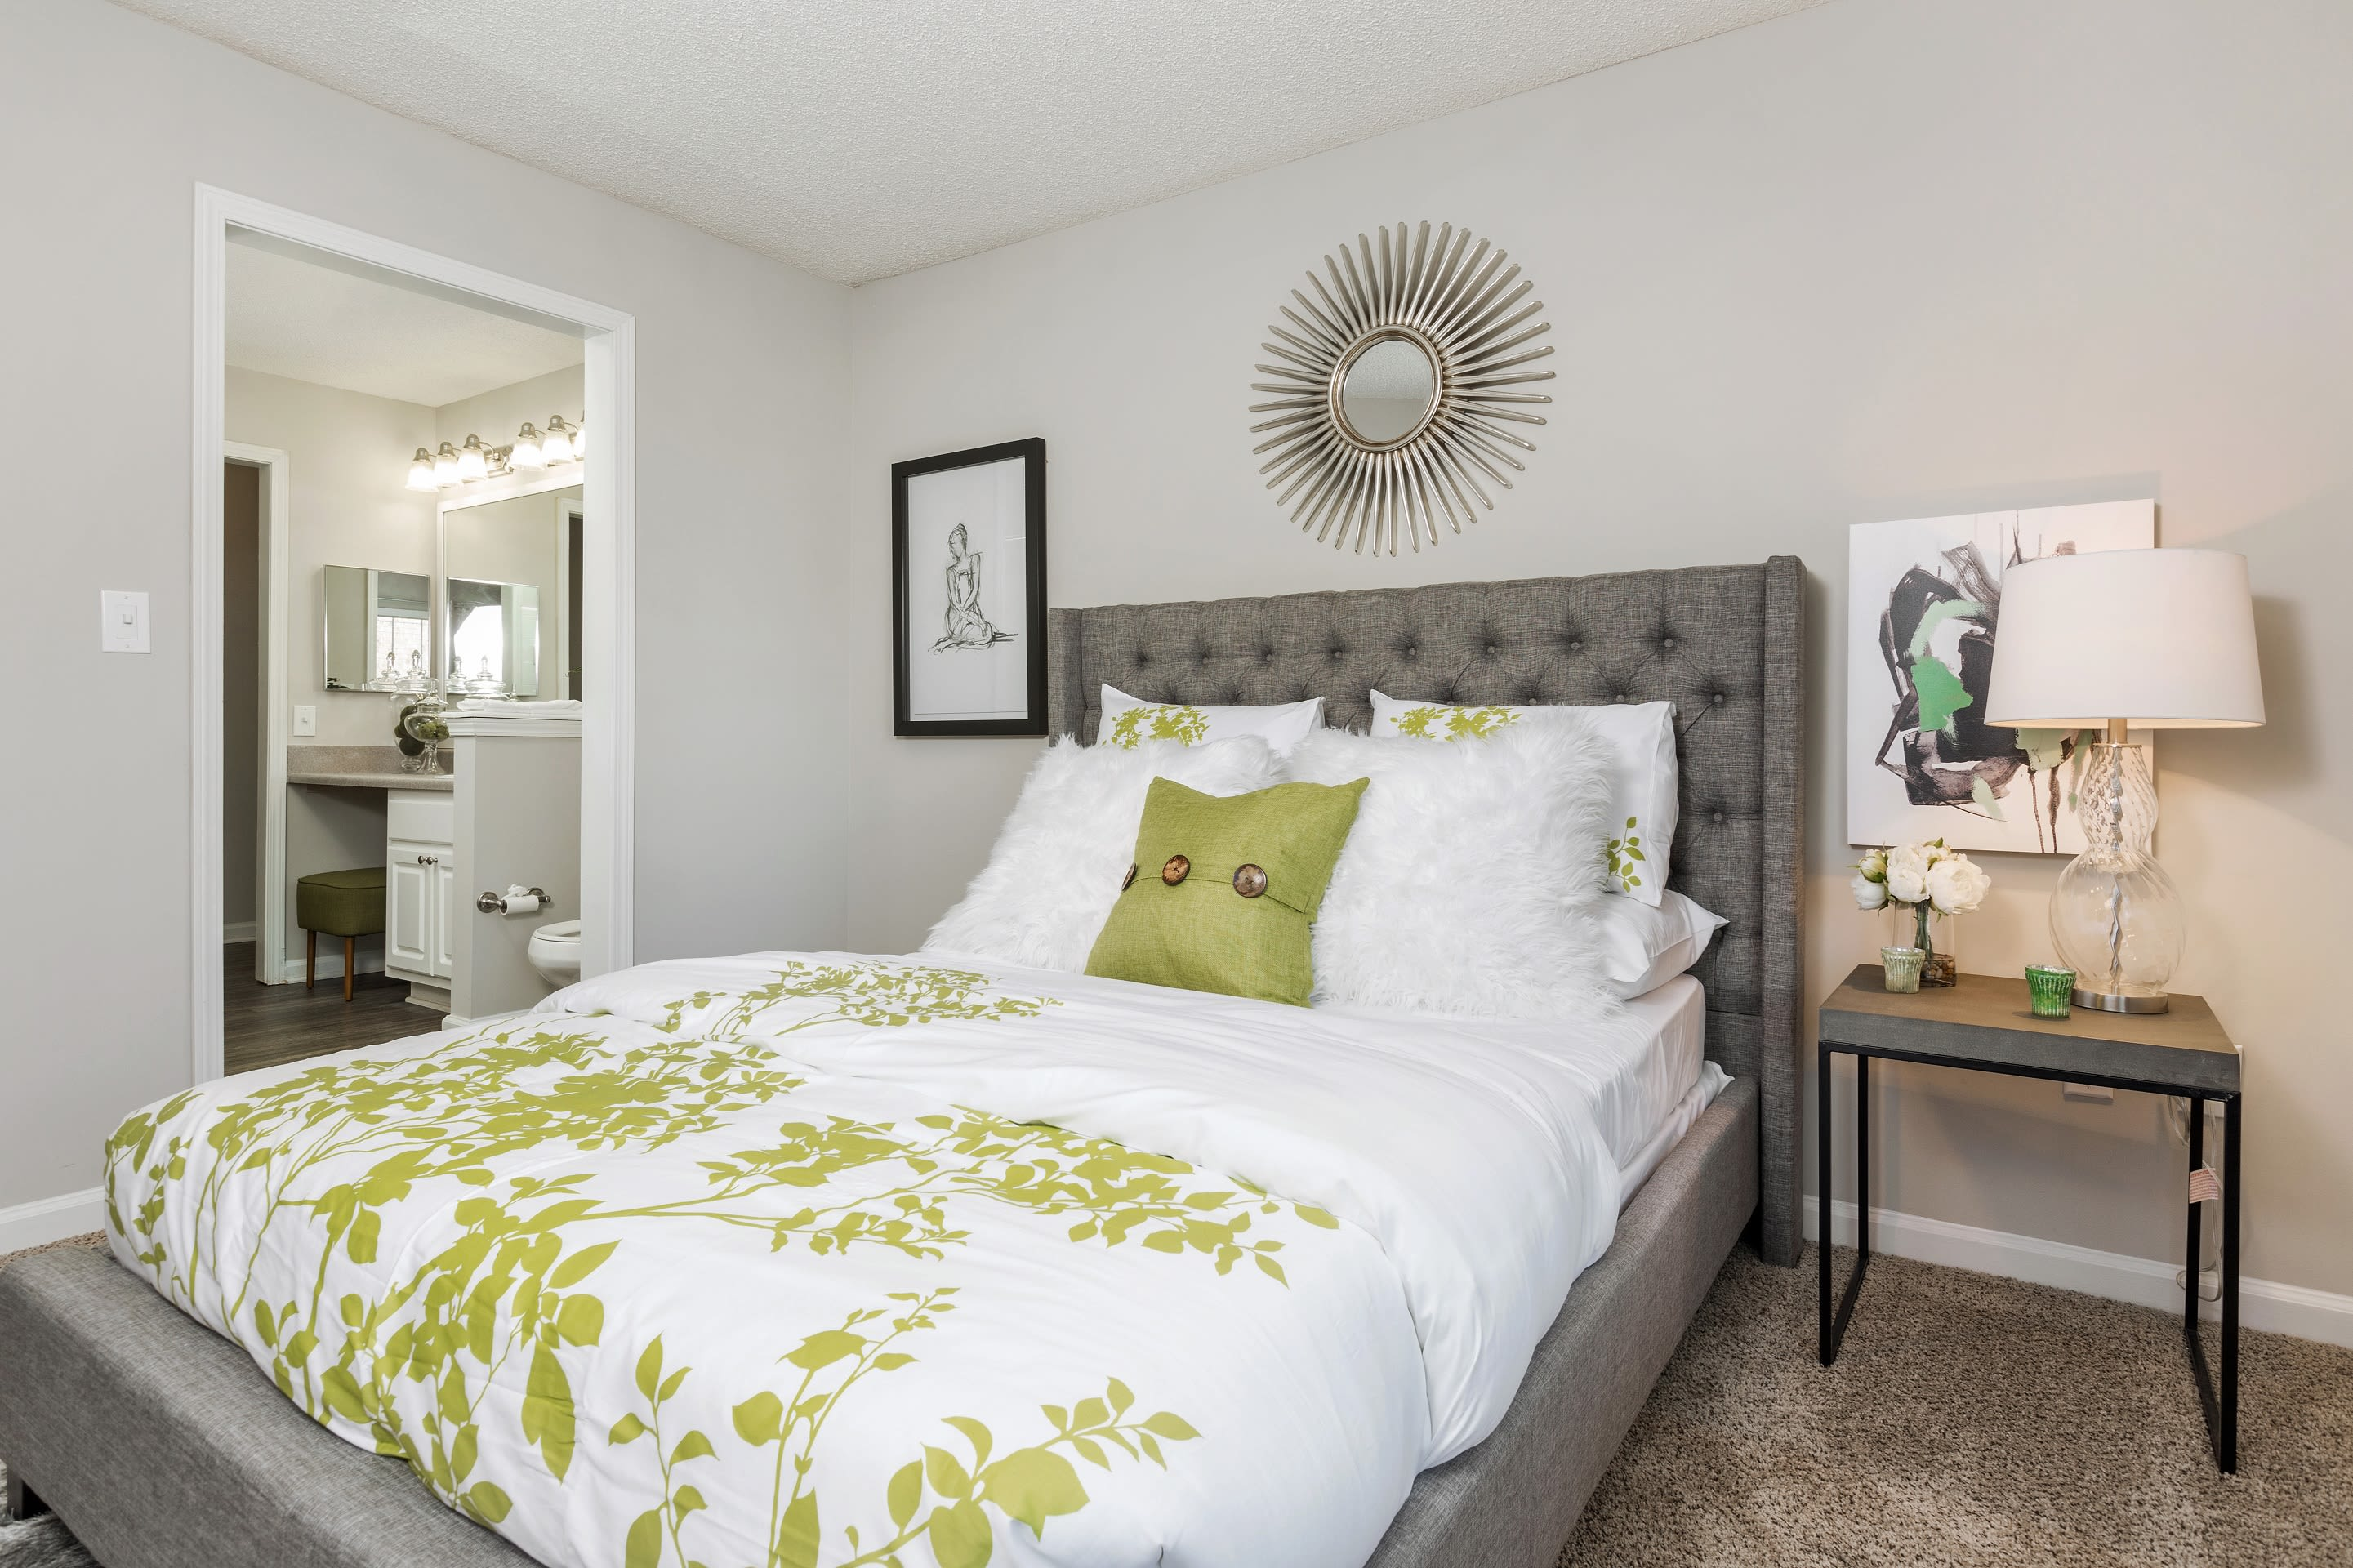 Guest bedroom at Belle Vista Apartment Homes in Lithonia, GA.